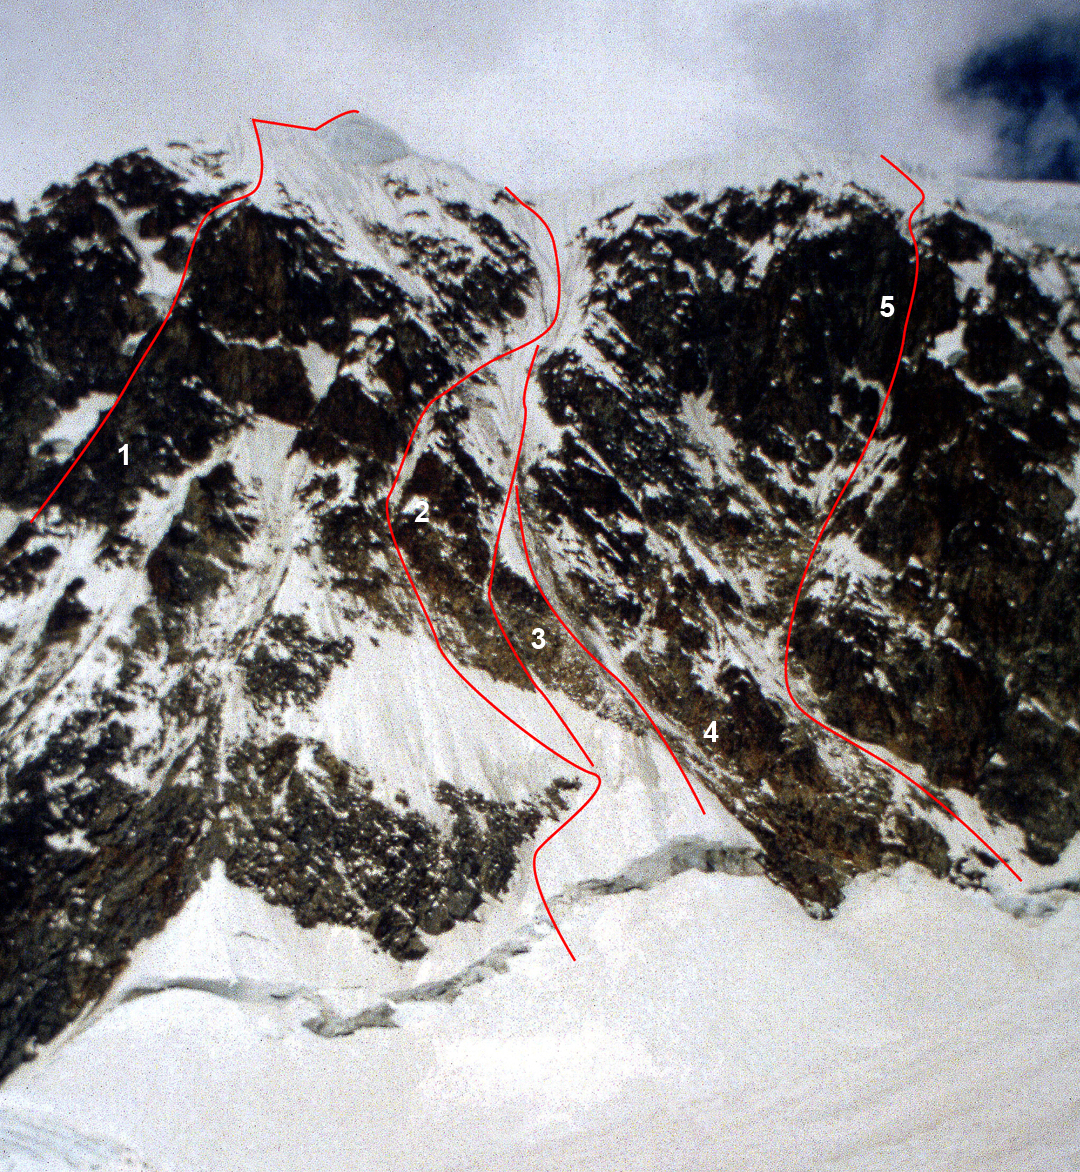 The central section of Illampu's west face, seen in 1997. (1) Nada Mañana (1991). (2) Koroska Smer (1986). (3) Chinnery-Schweizer (1997). (4) Central Couloir Direct Start (1990). (5) Alpos Secret (1991).